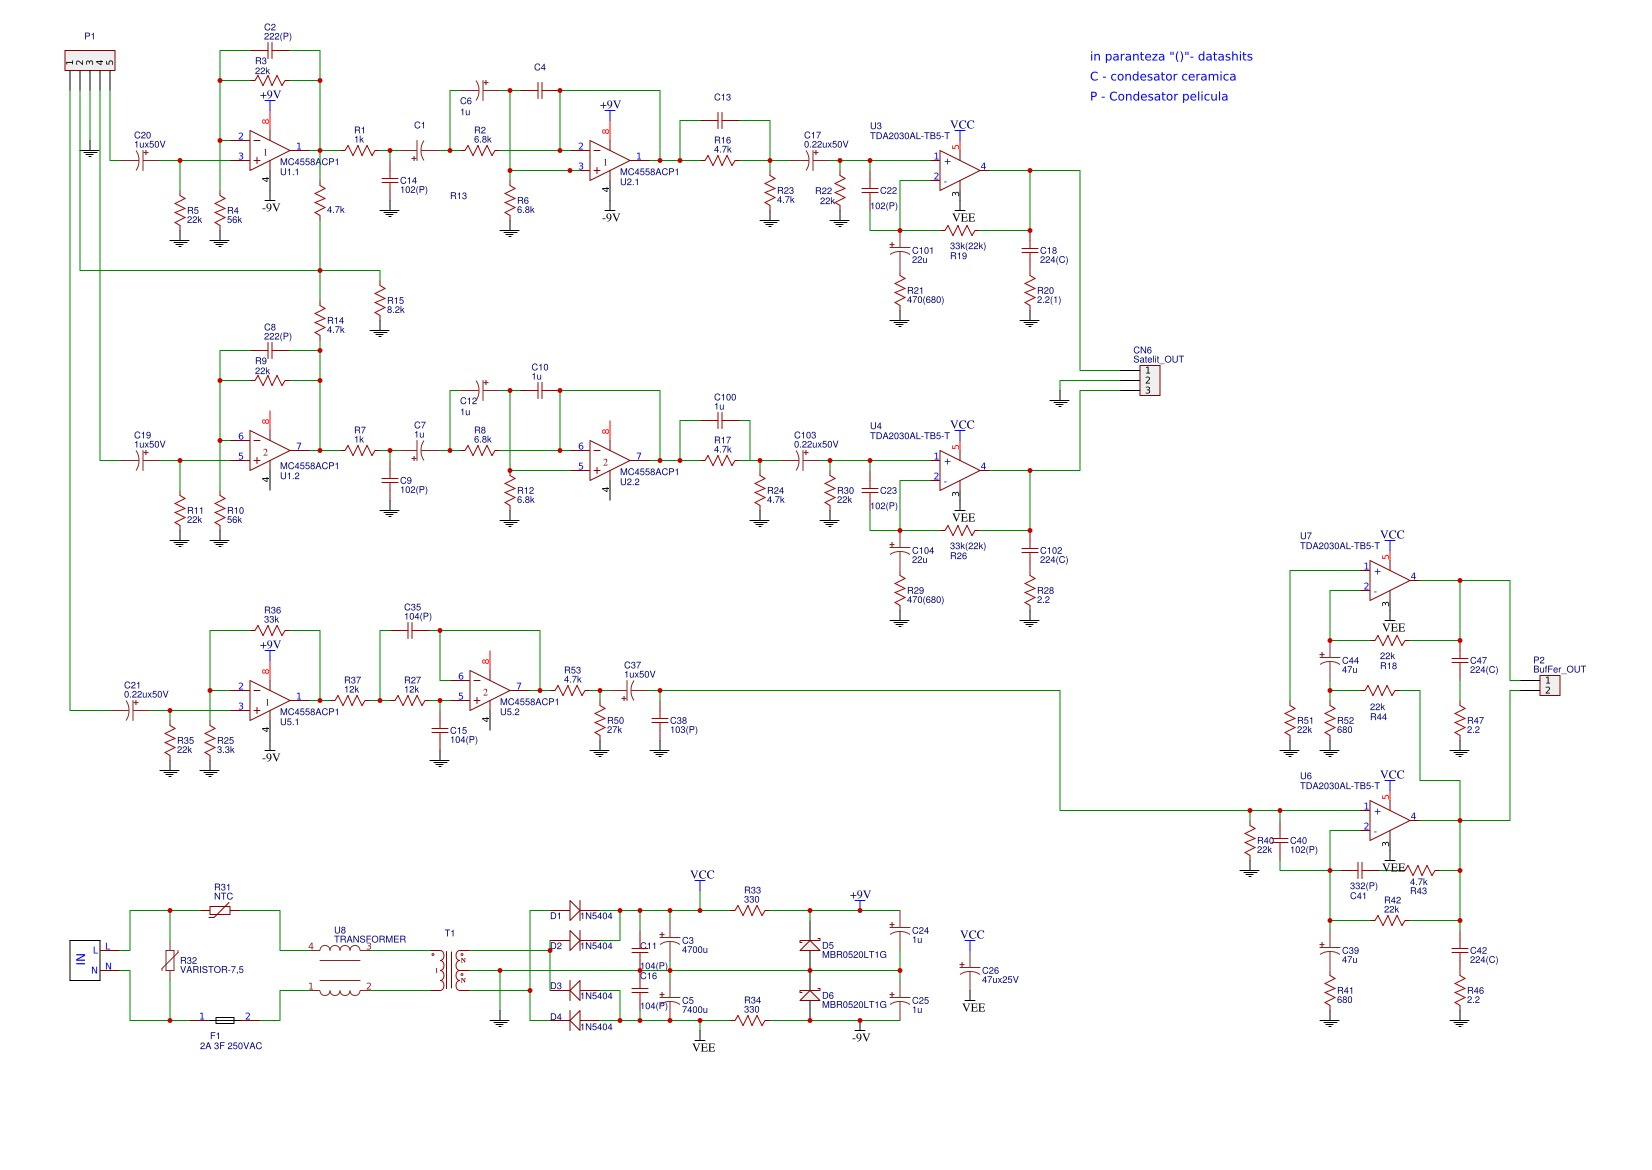 Pin Layout Tda 2040 Tda 15 Search Easyeda Of Pin Layout Tda 2040